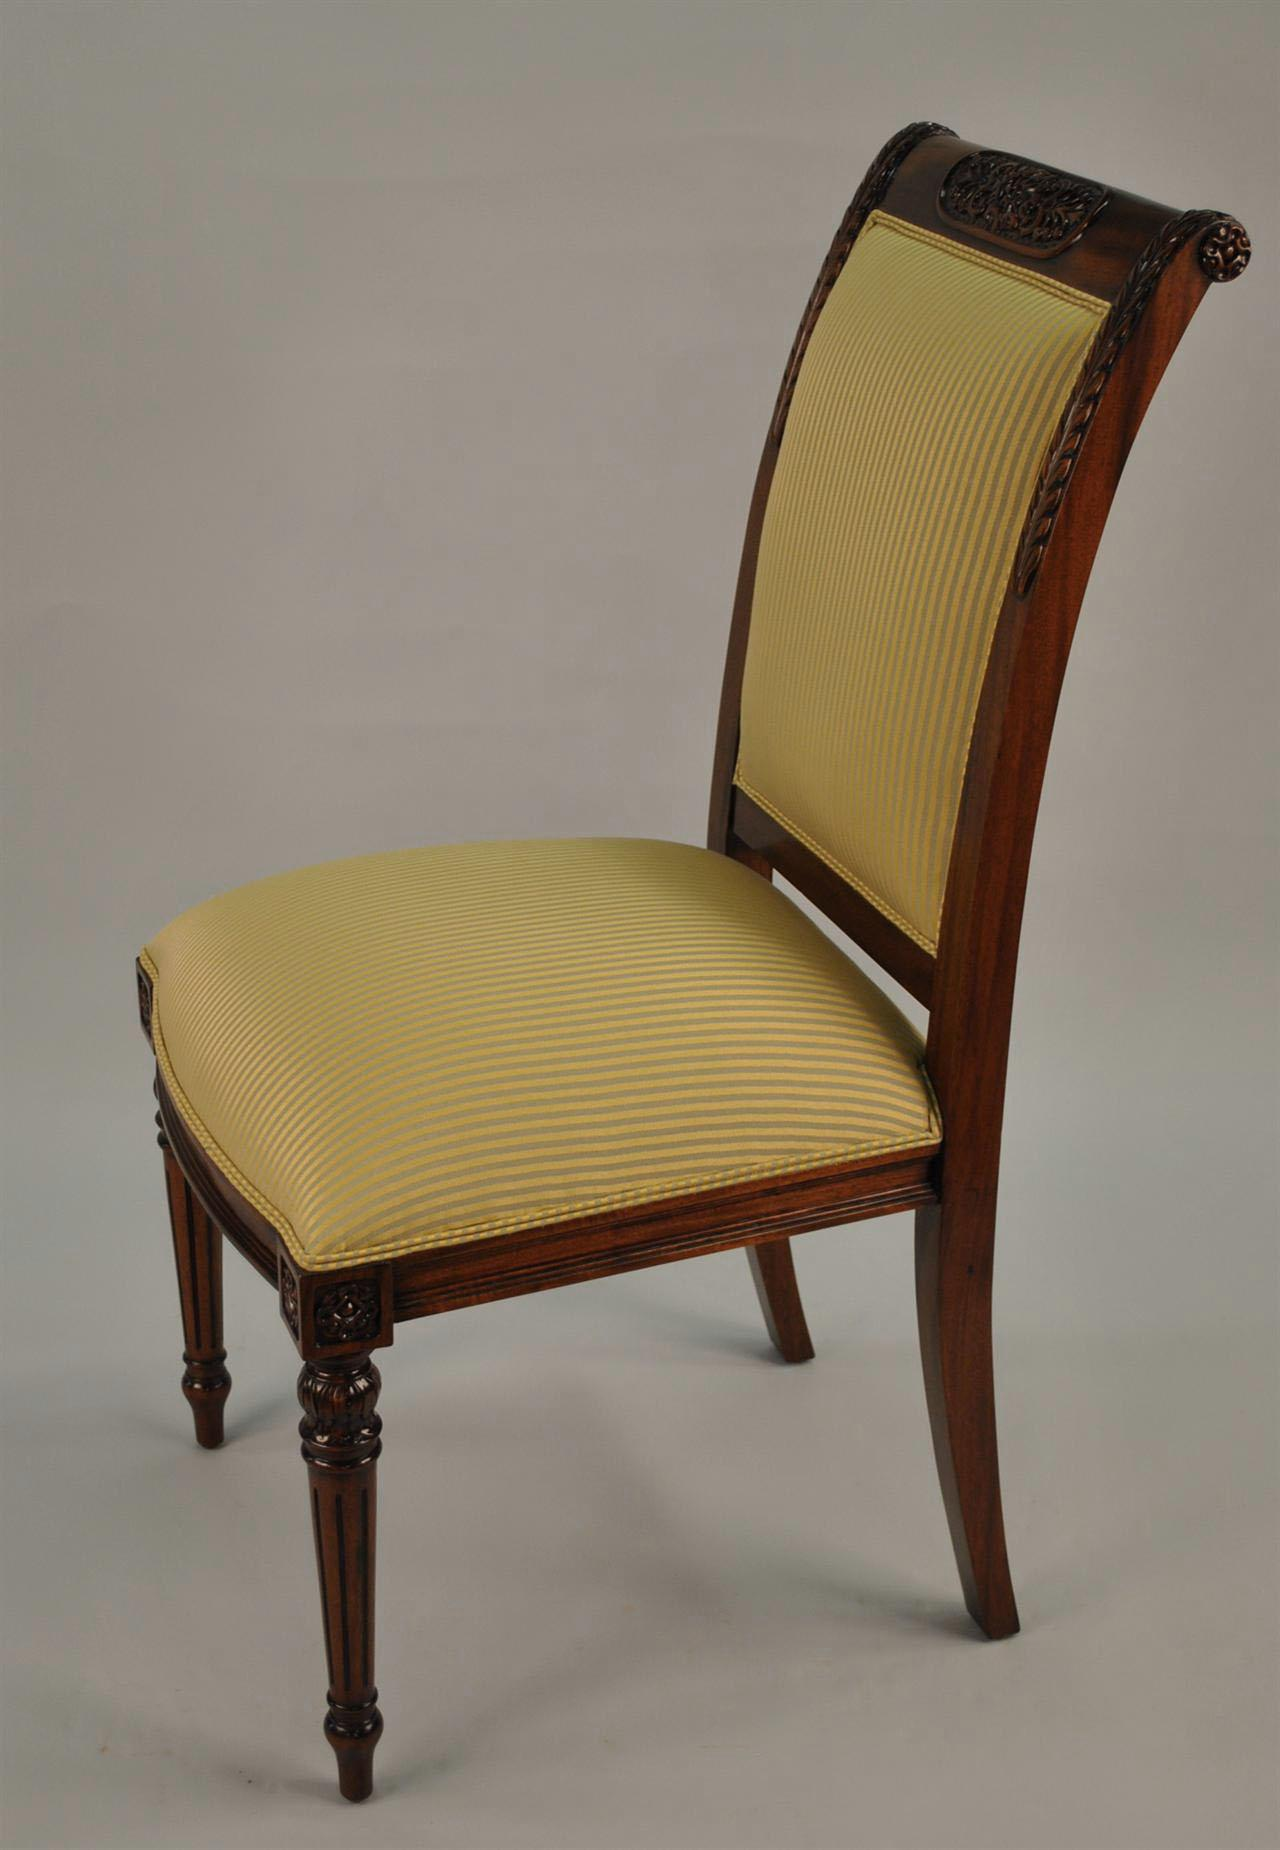 8 High END Gold Leaf Accented Mahogany Dining Chairs 8 Side Chairs